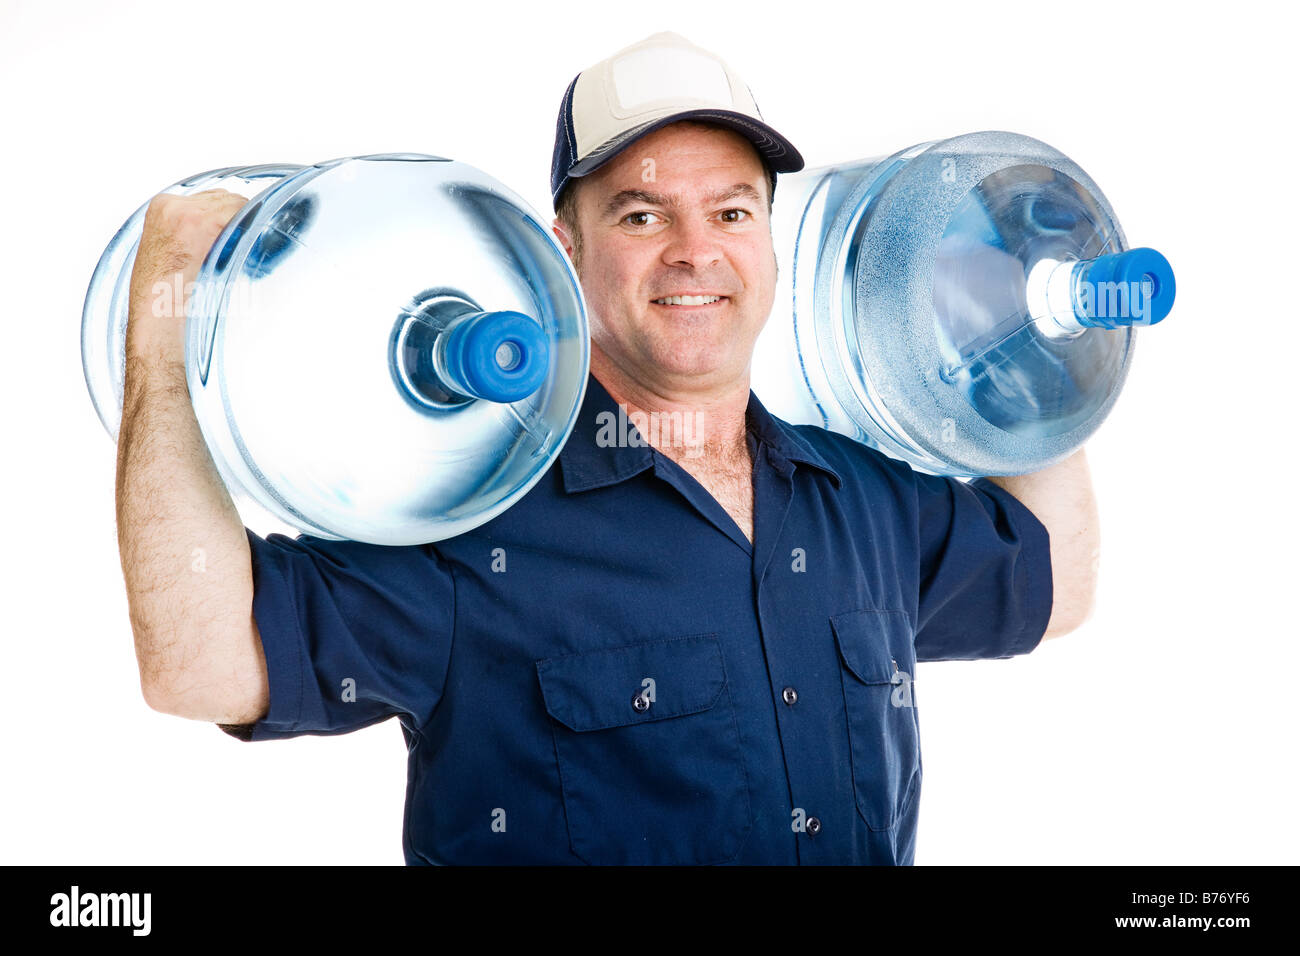 Man Carrying Water Jug Stock Photos Amp Man Carrying Water